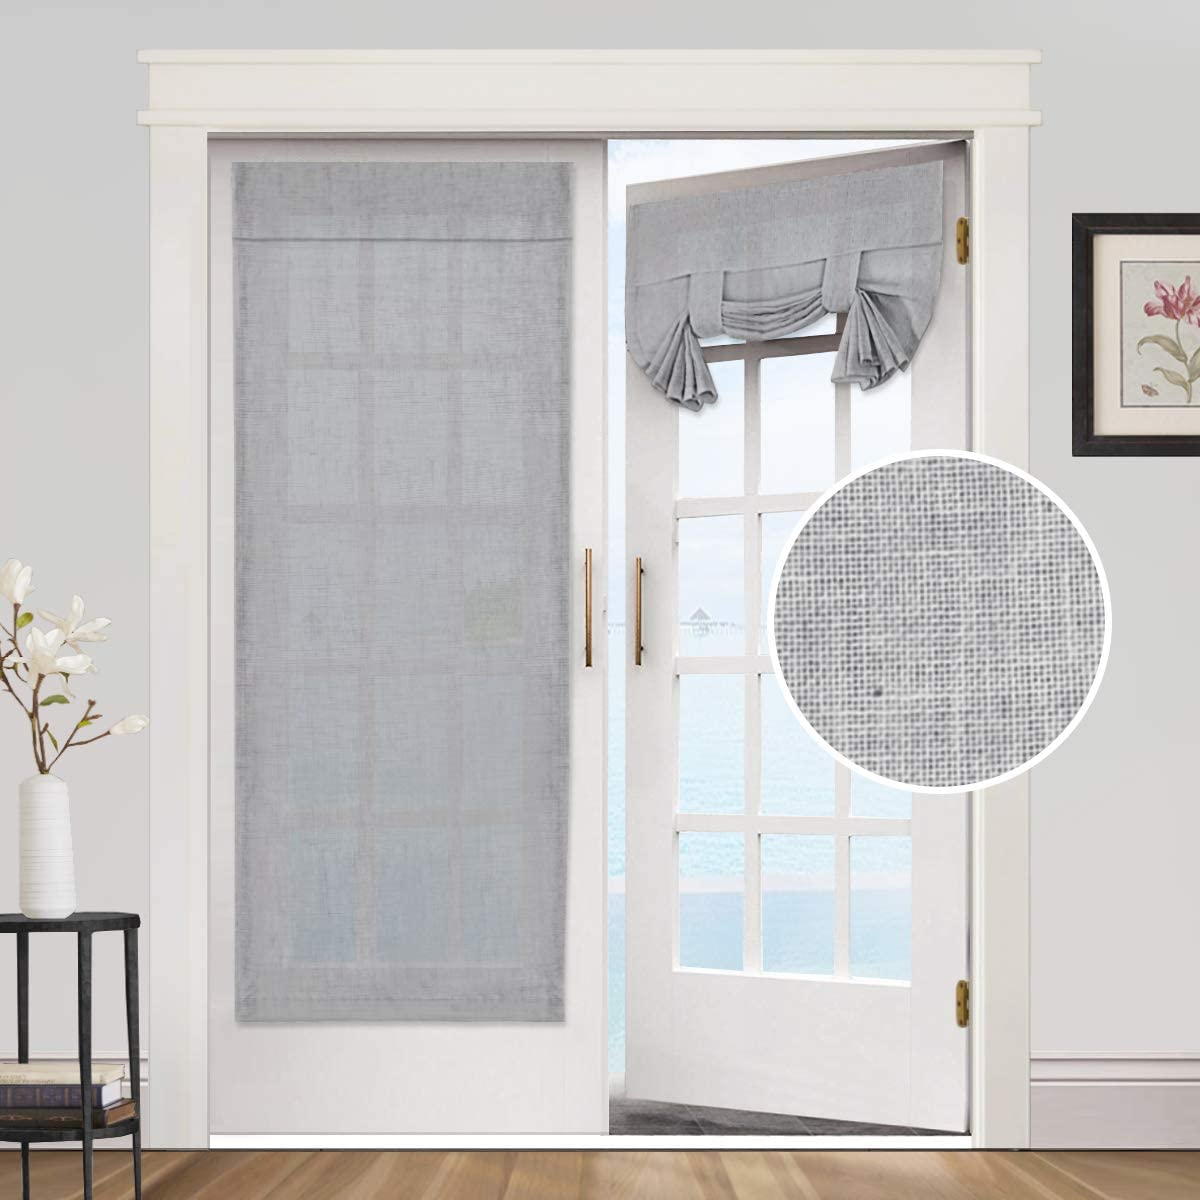 Privacy French Door Curtains- Linen Blended Weave Textured Tricia Tie Up Light Filtering Functional Thermal Insulated Portable Panel Drapes for Home and Office,26 x 68 inches, 2 Panels, Dove